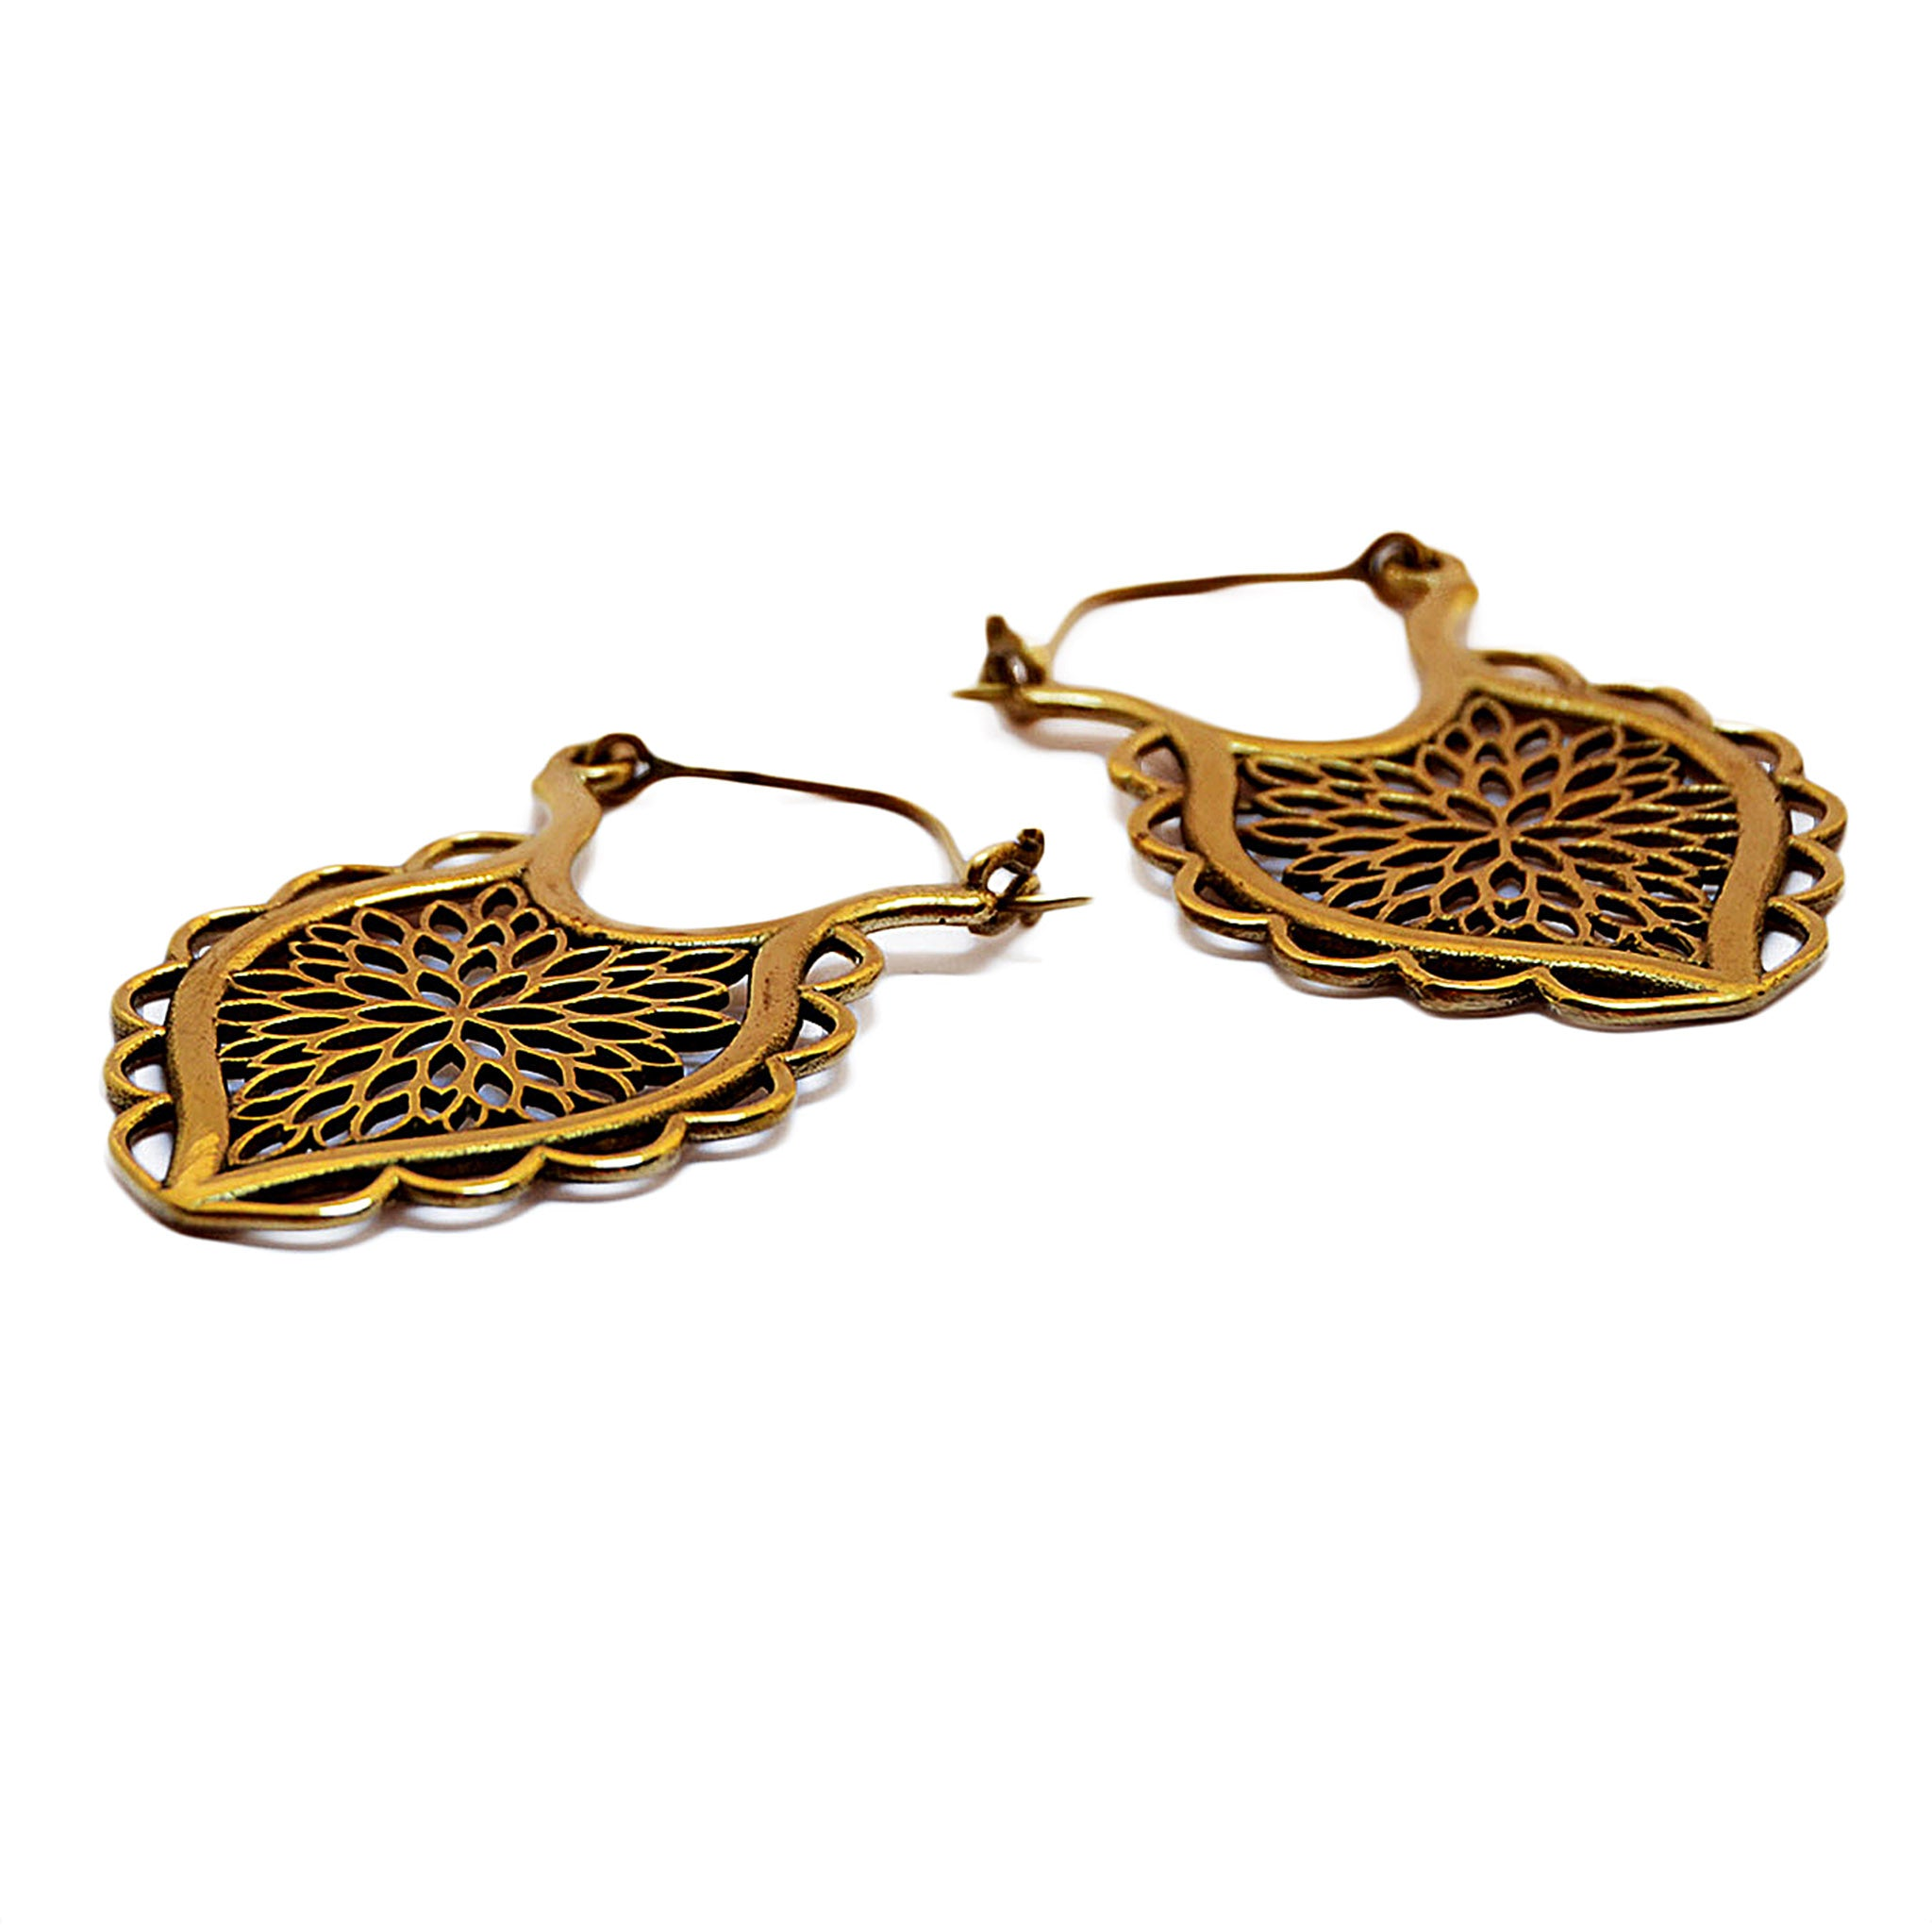 Ethnic gypsy earrings